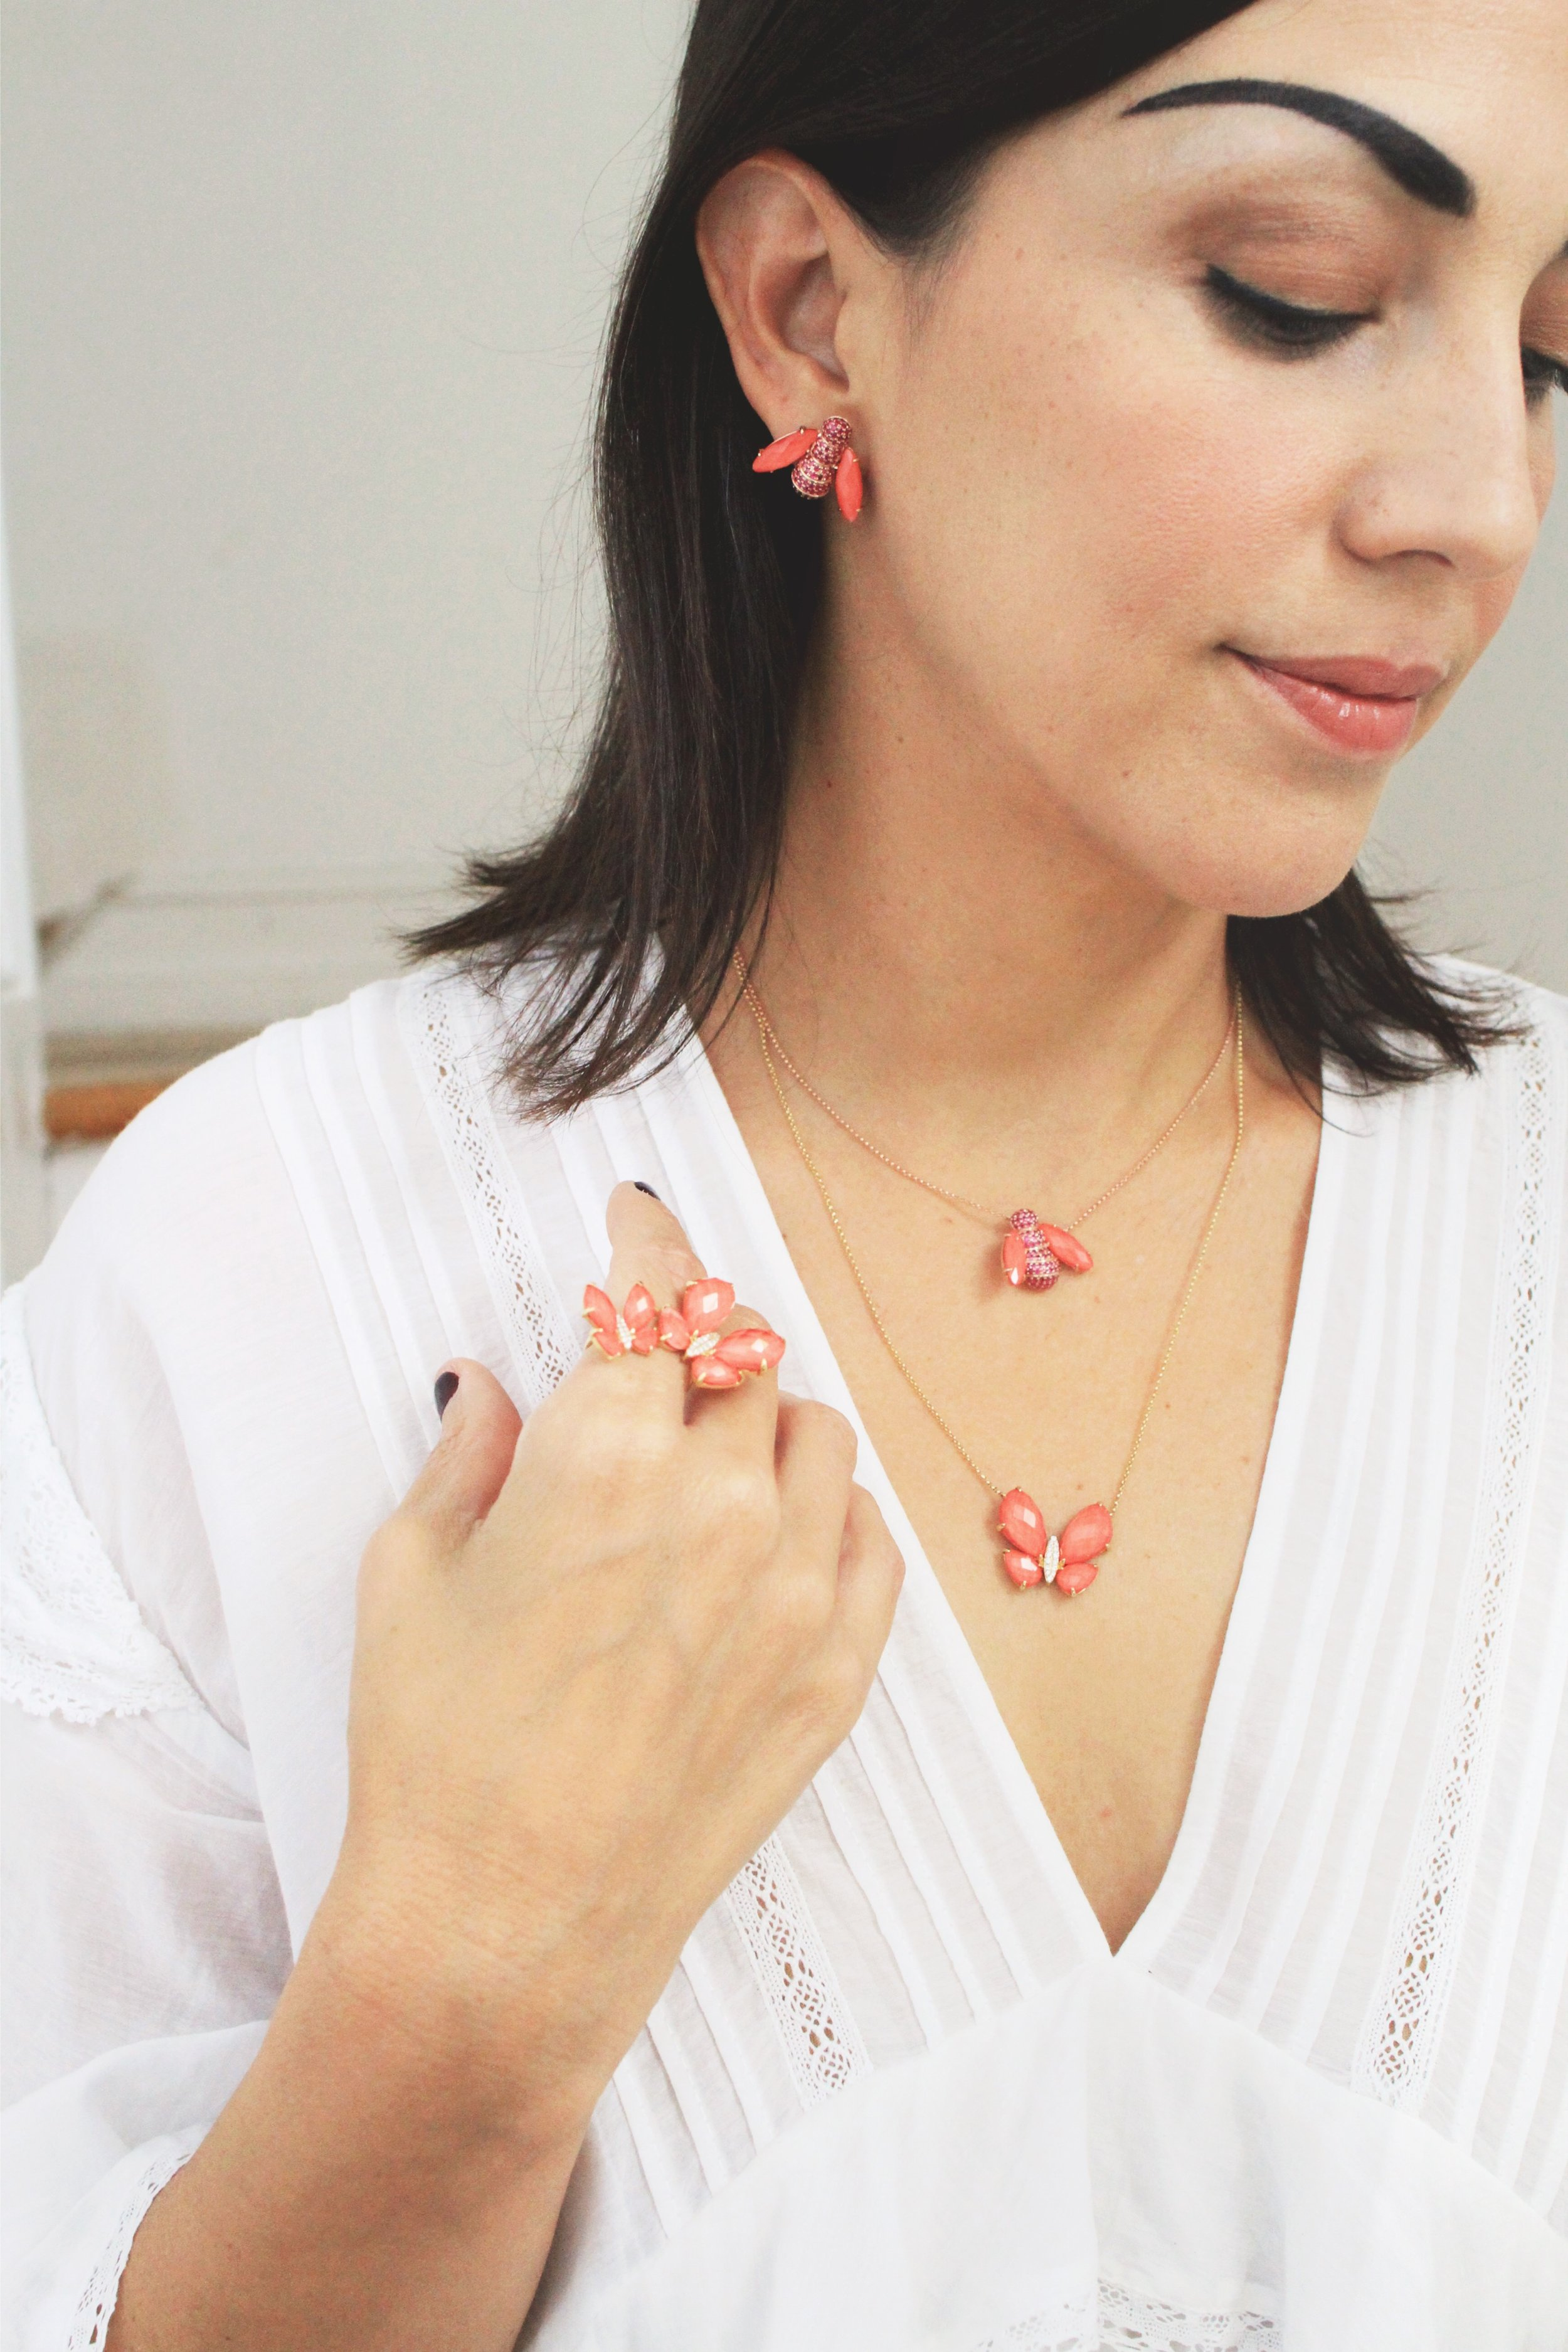 Coyly deciding if I'm keeping earrings or necklace. or both! Photo by Alana Harris